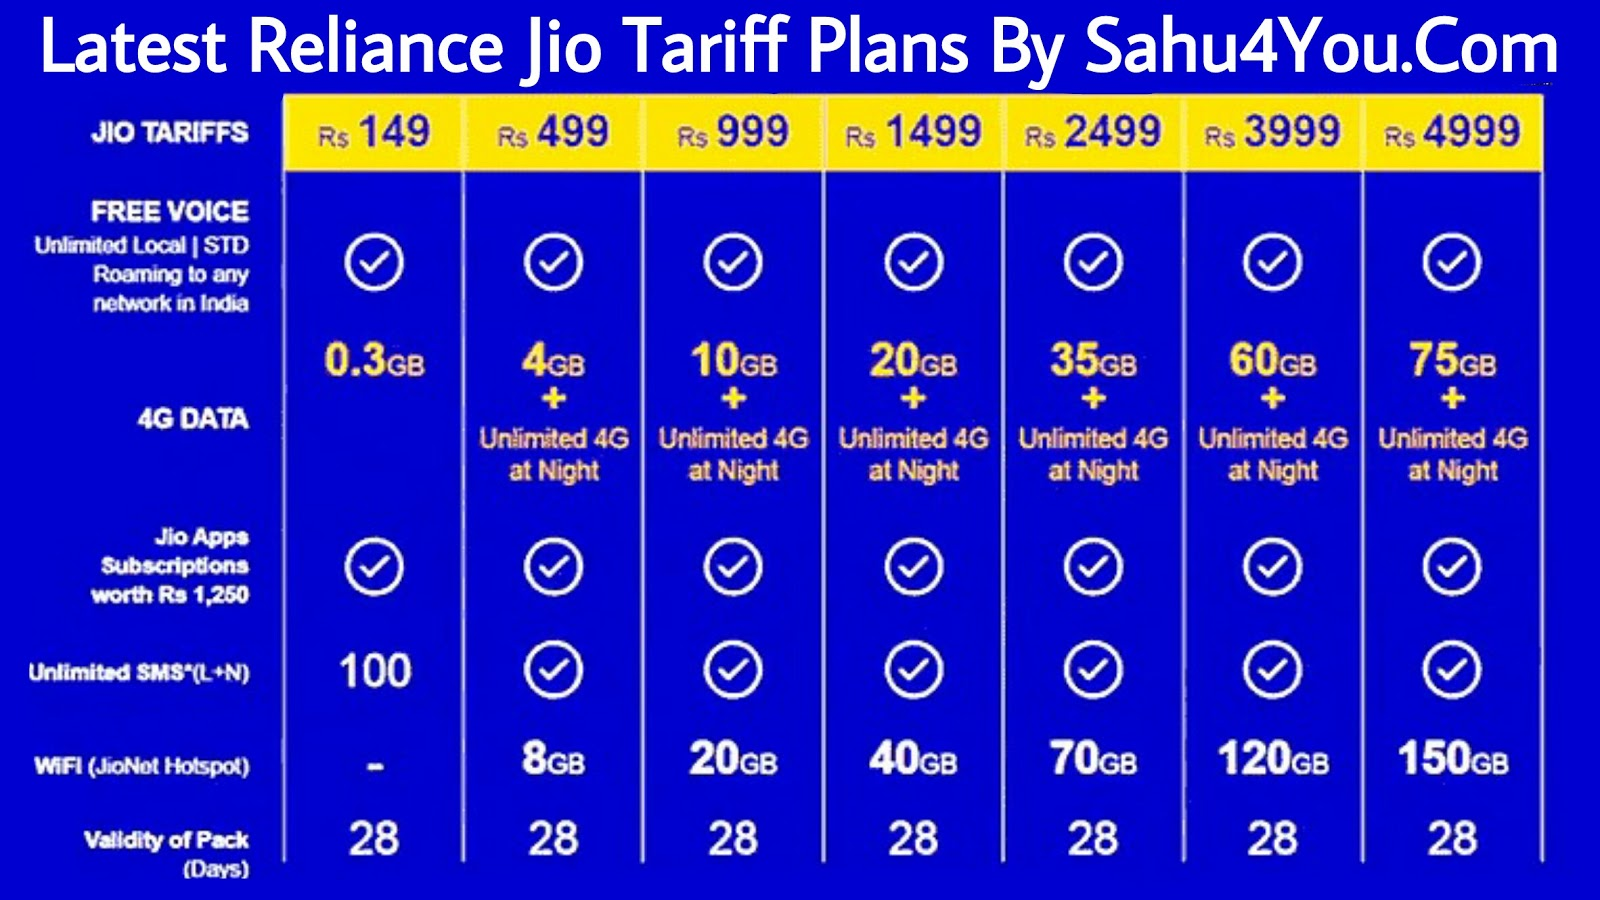 Latest Reliance Jio Tariff Plans, Recharge, Internet Packs Offers